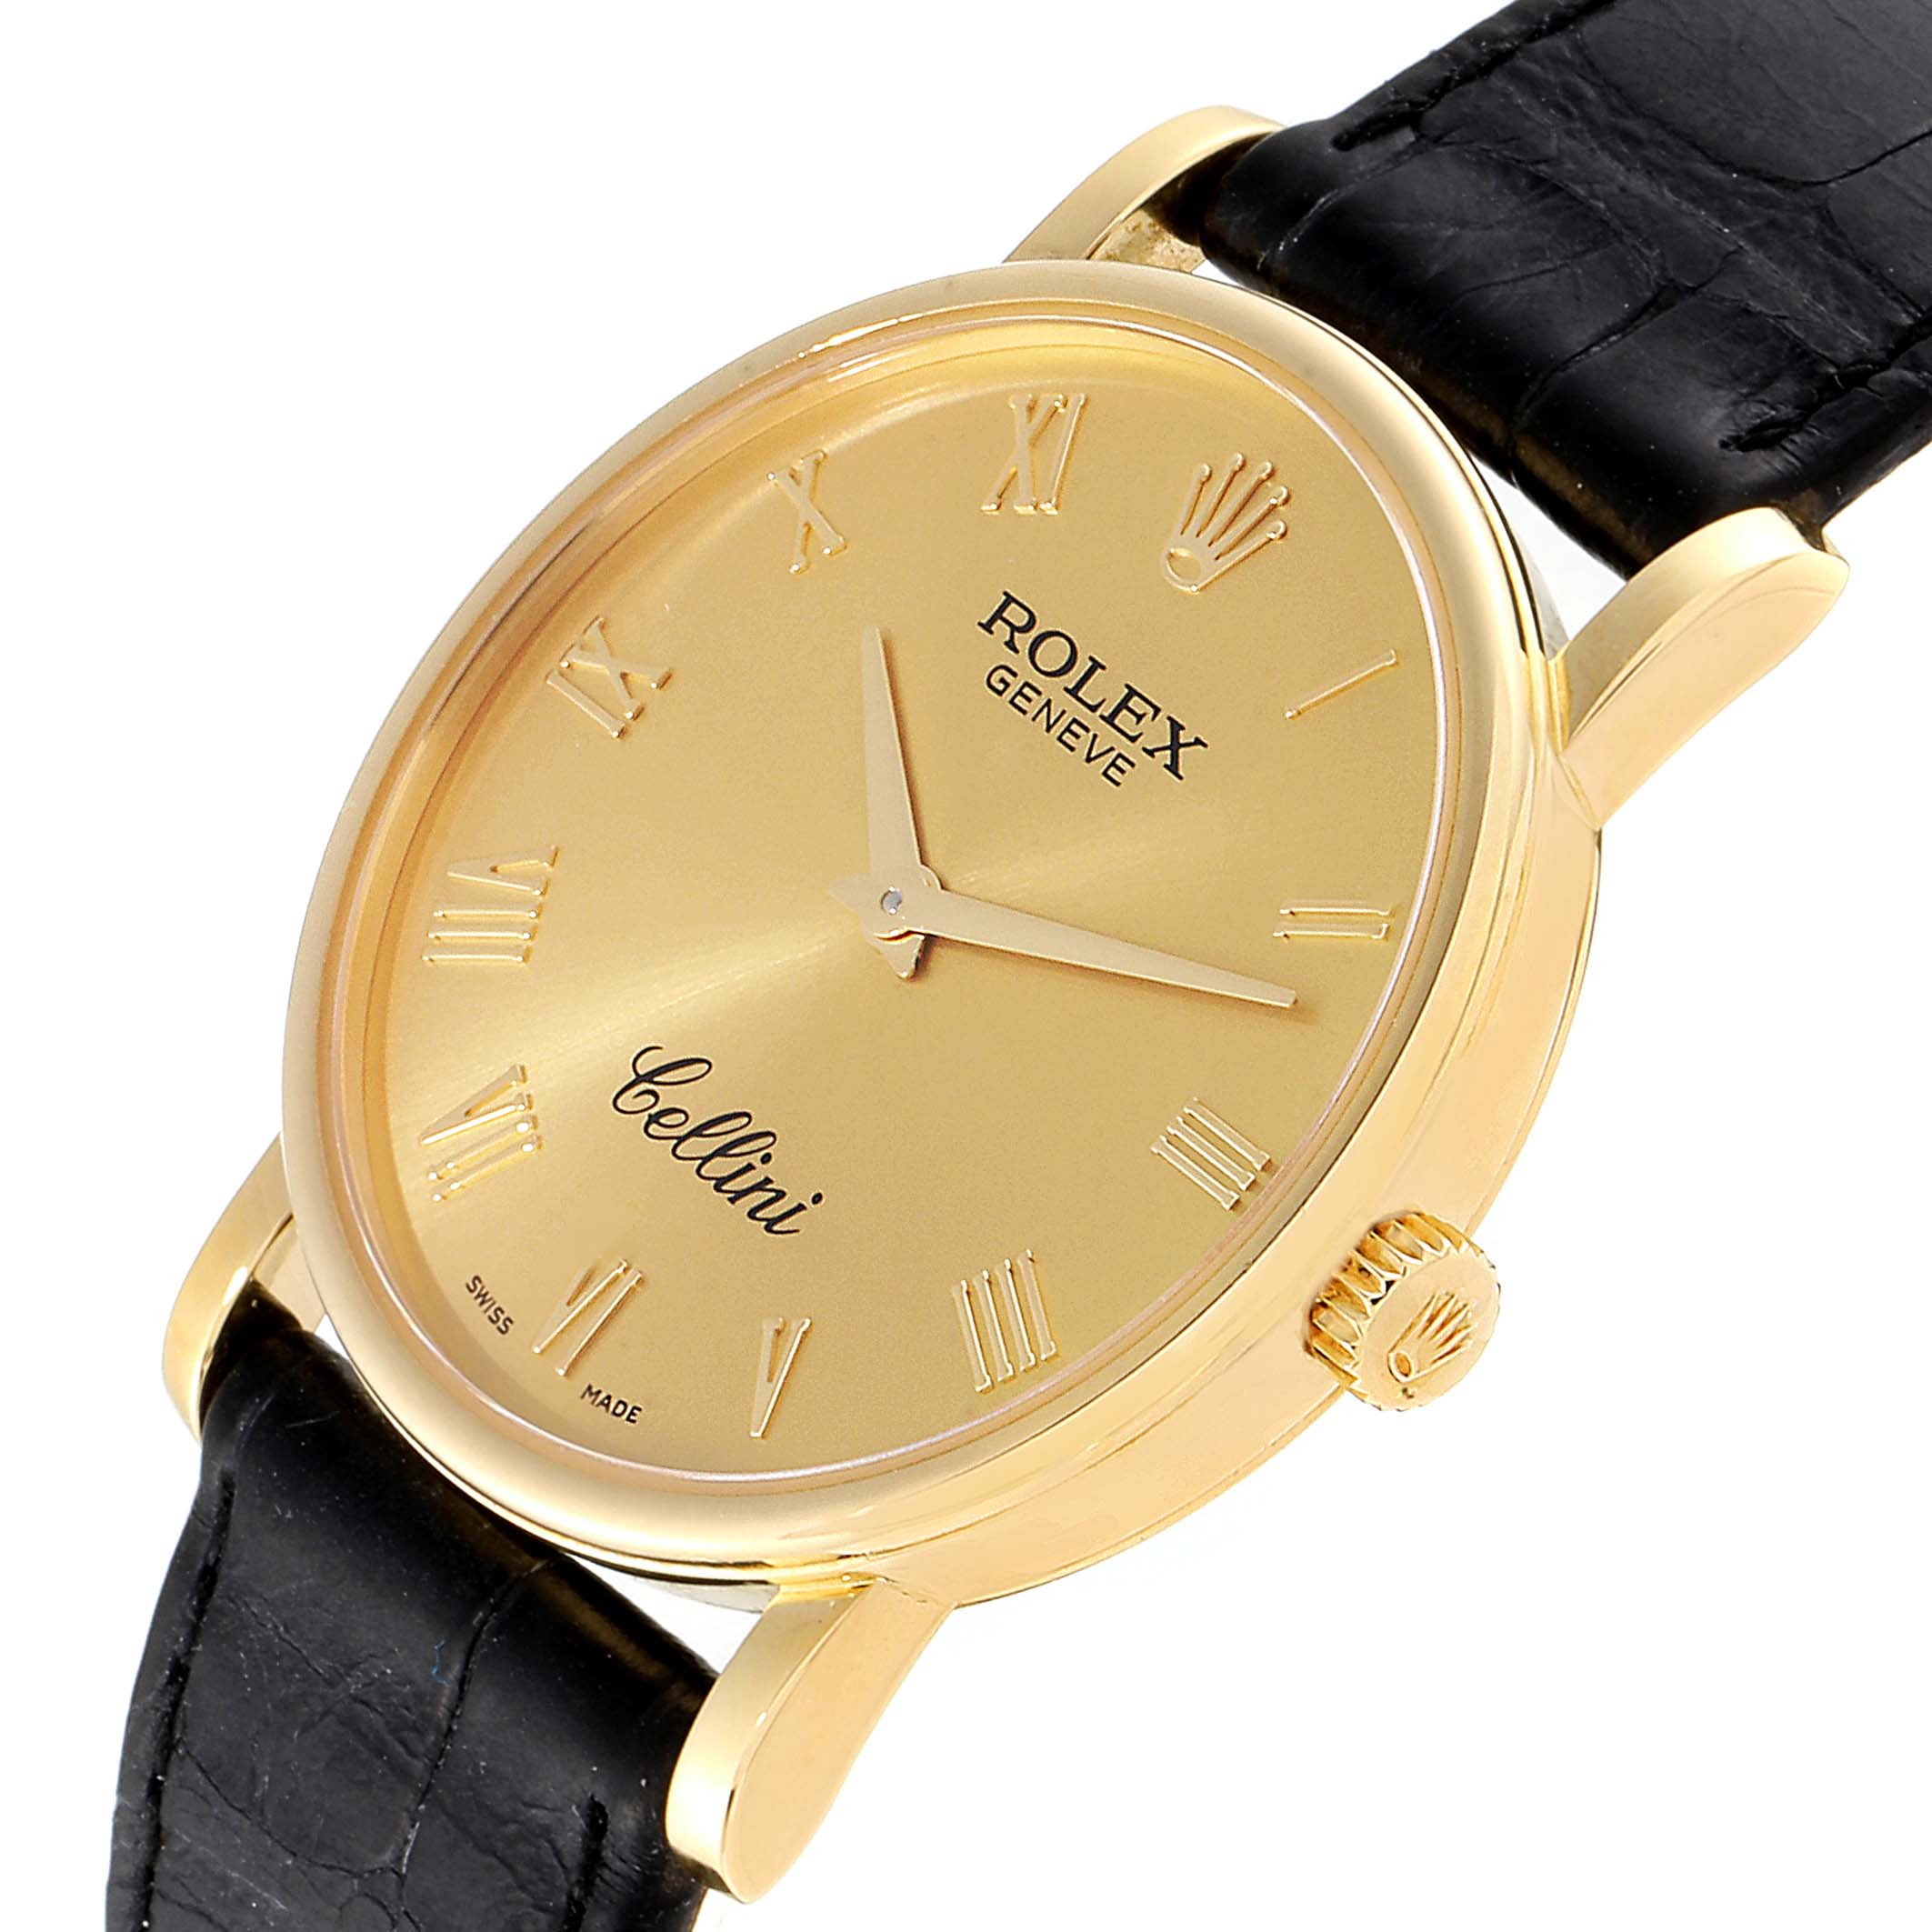 Rolex Cellini Classic Yellow Gold Brown Strap Mens Watch 5115 Box Card SwissWatchExpo